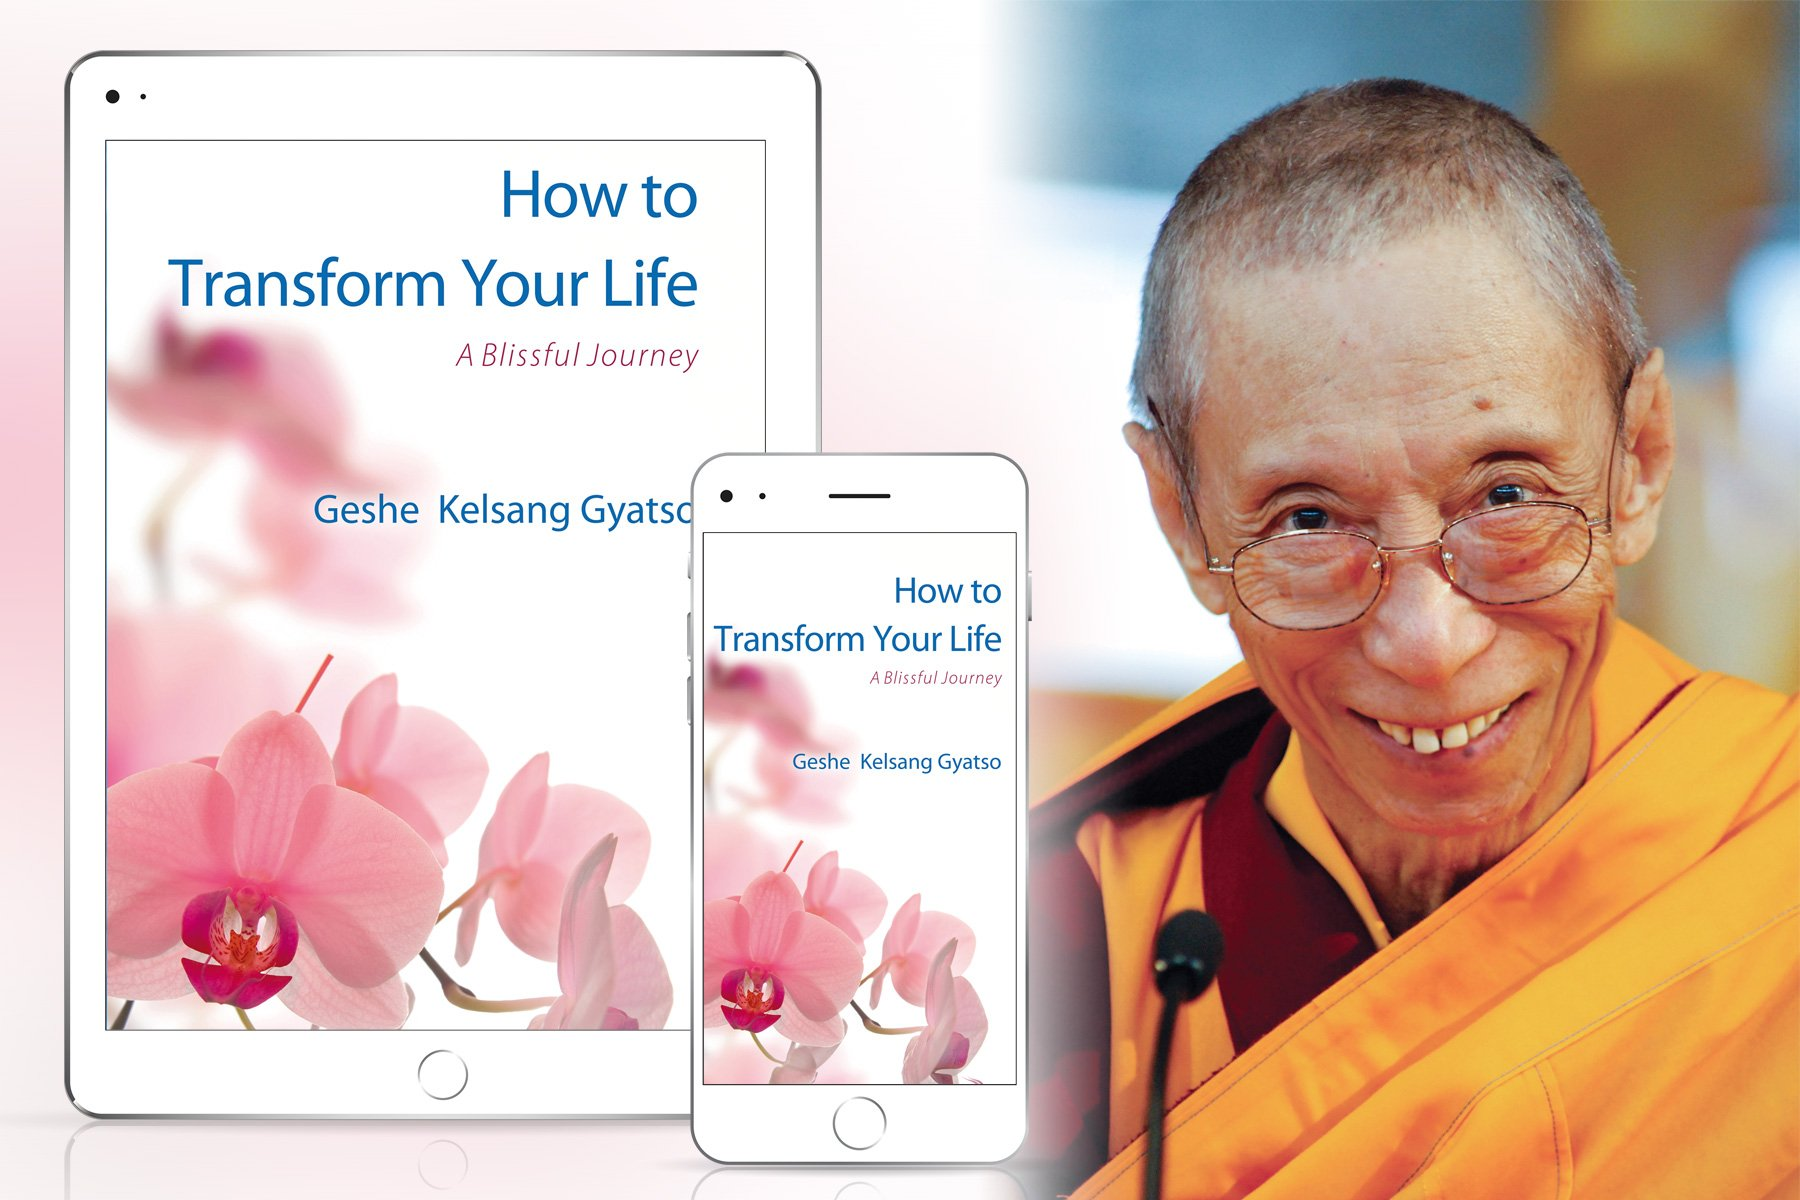 How to Transform Your Life by Venerable Geshe Kelsang Gyatso